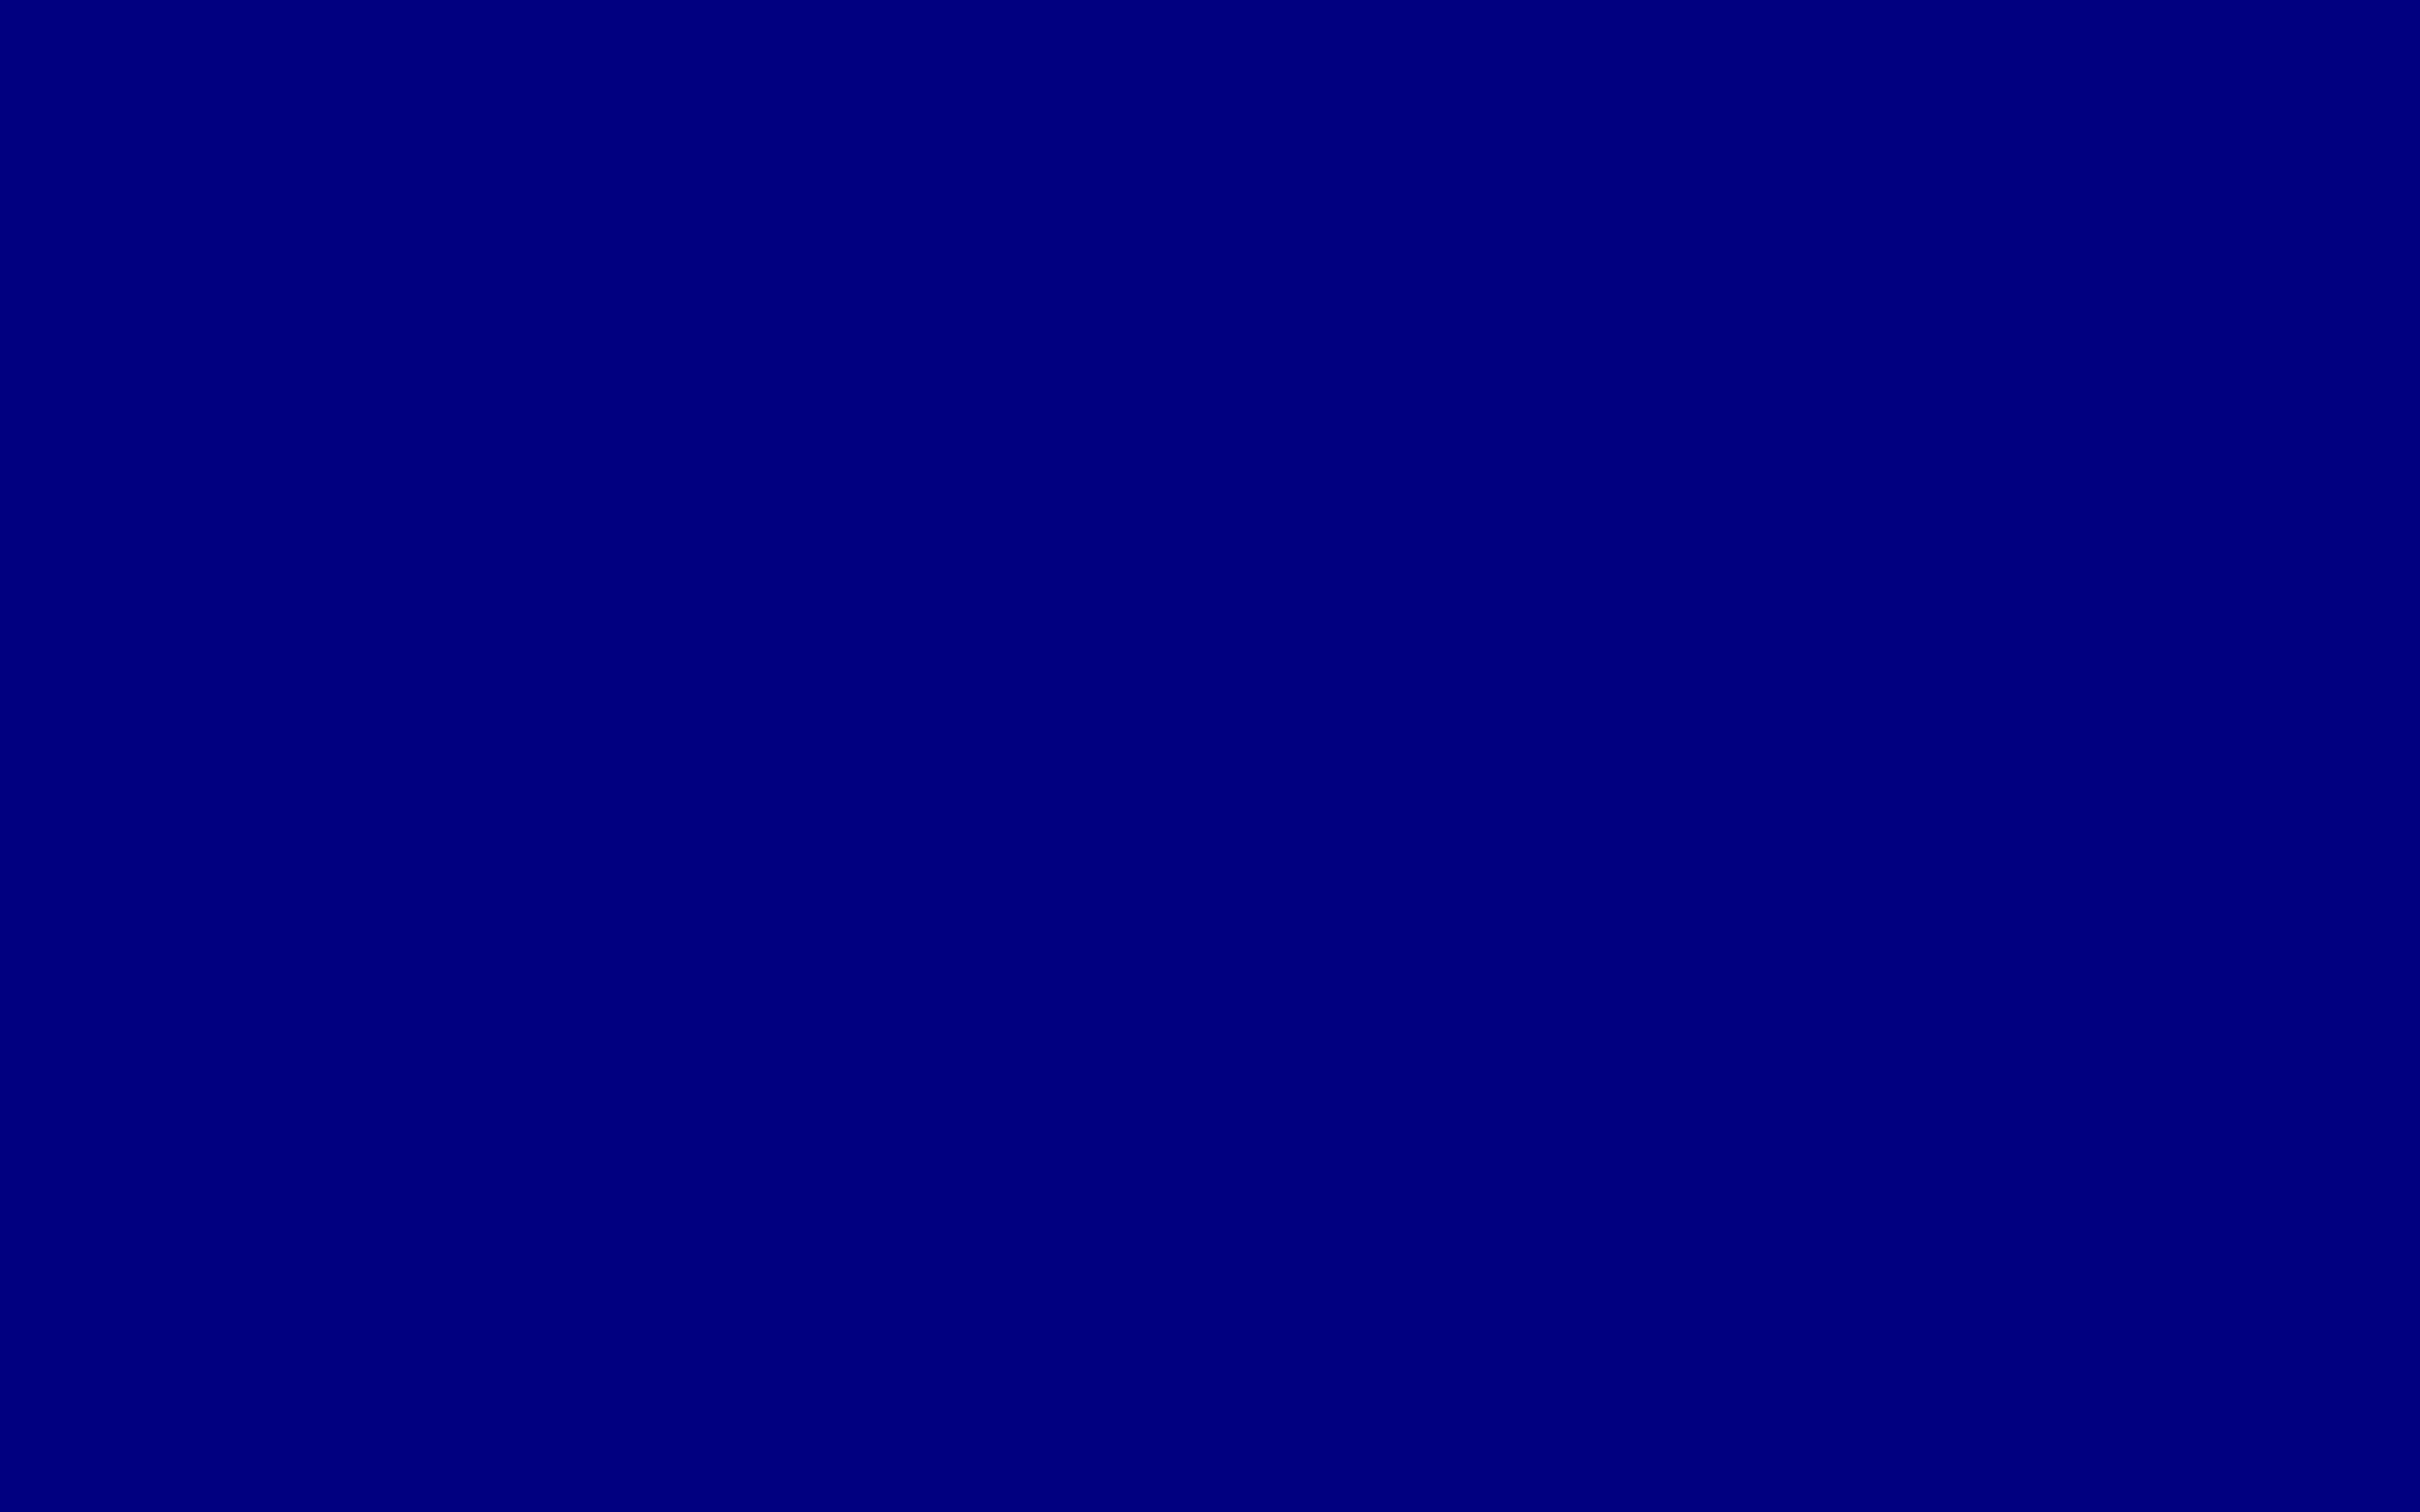 2560x1600 Navy Blue Solid Color Background